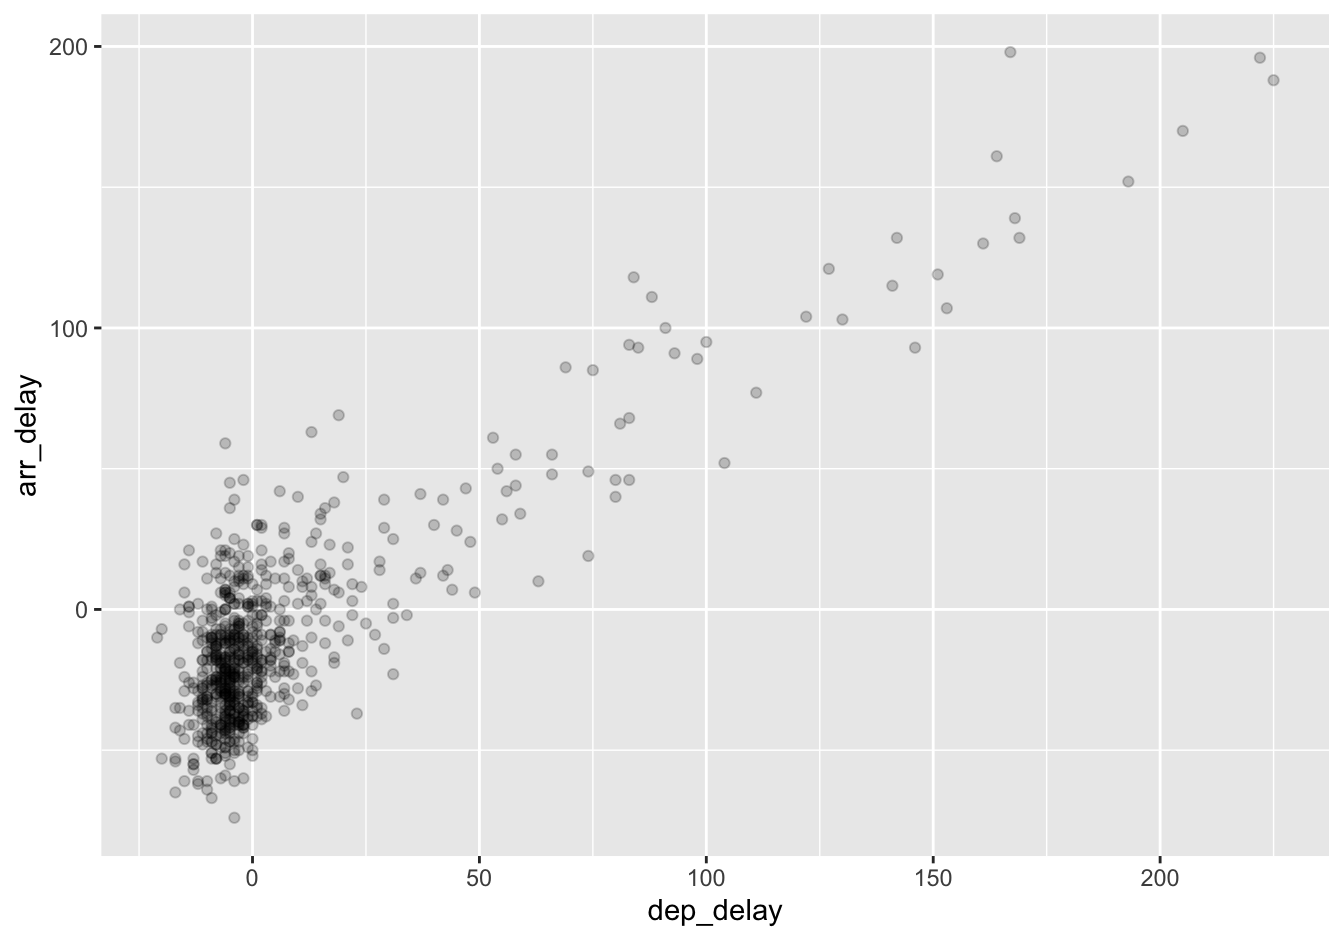 Arrival vs departure delays scatterplot with alpha = 0.2.